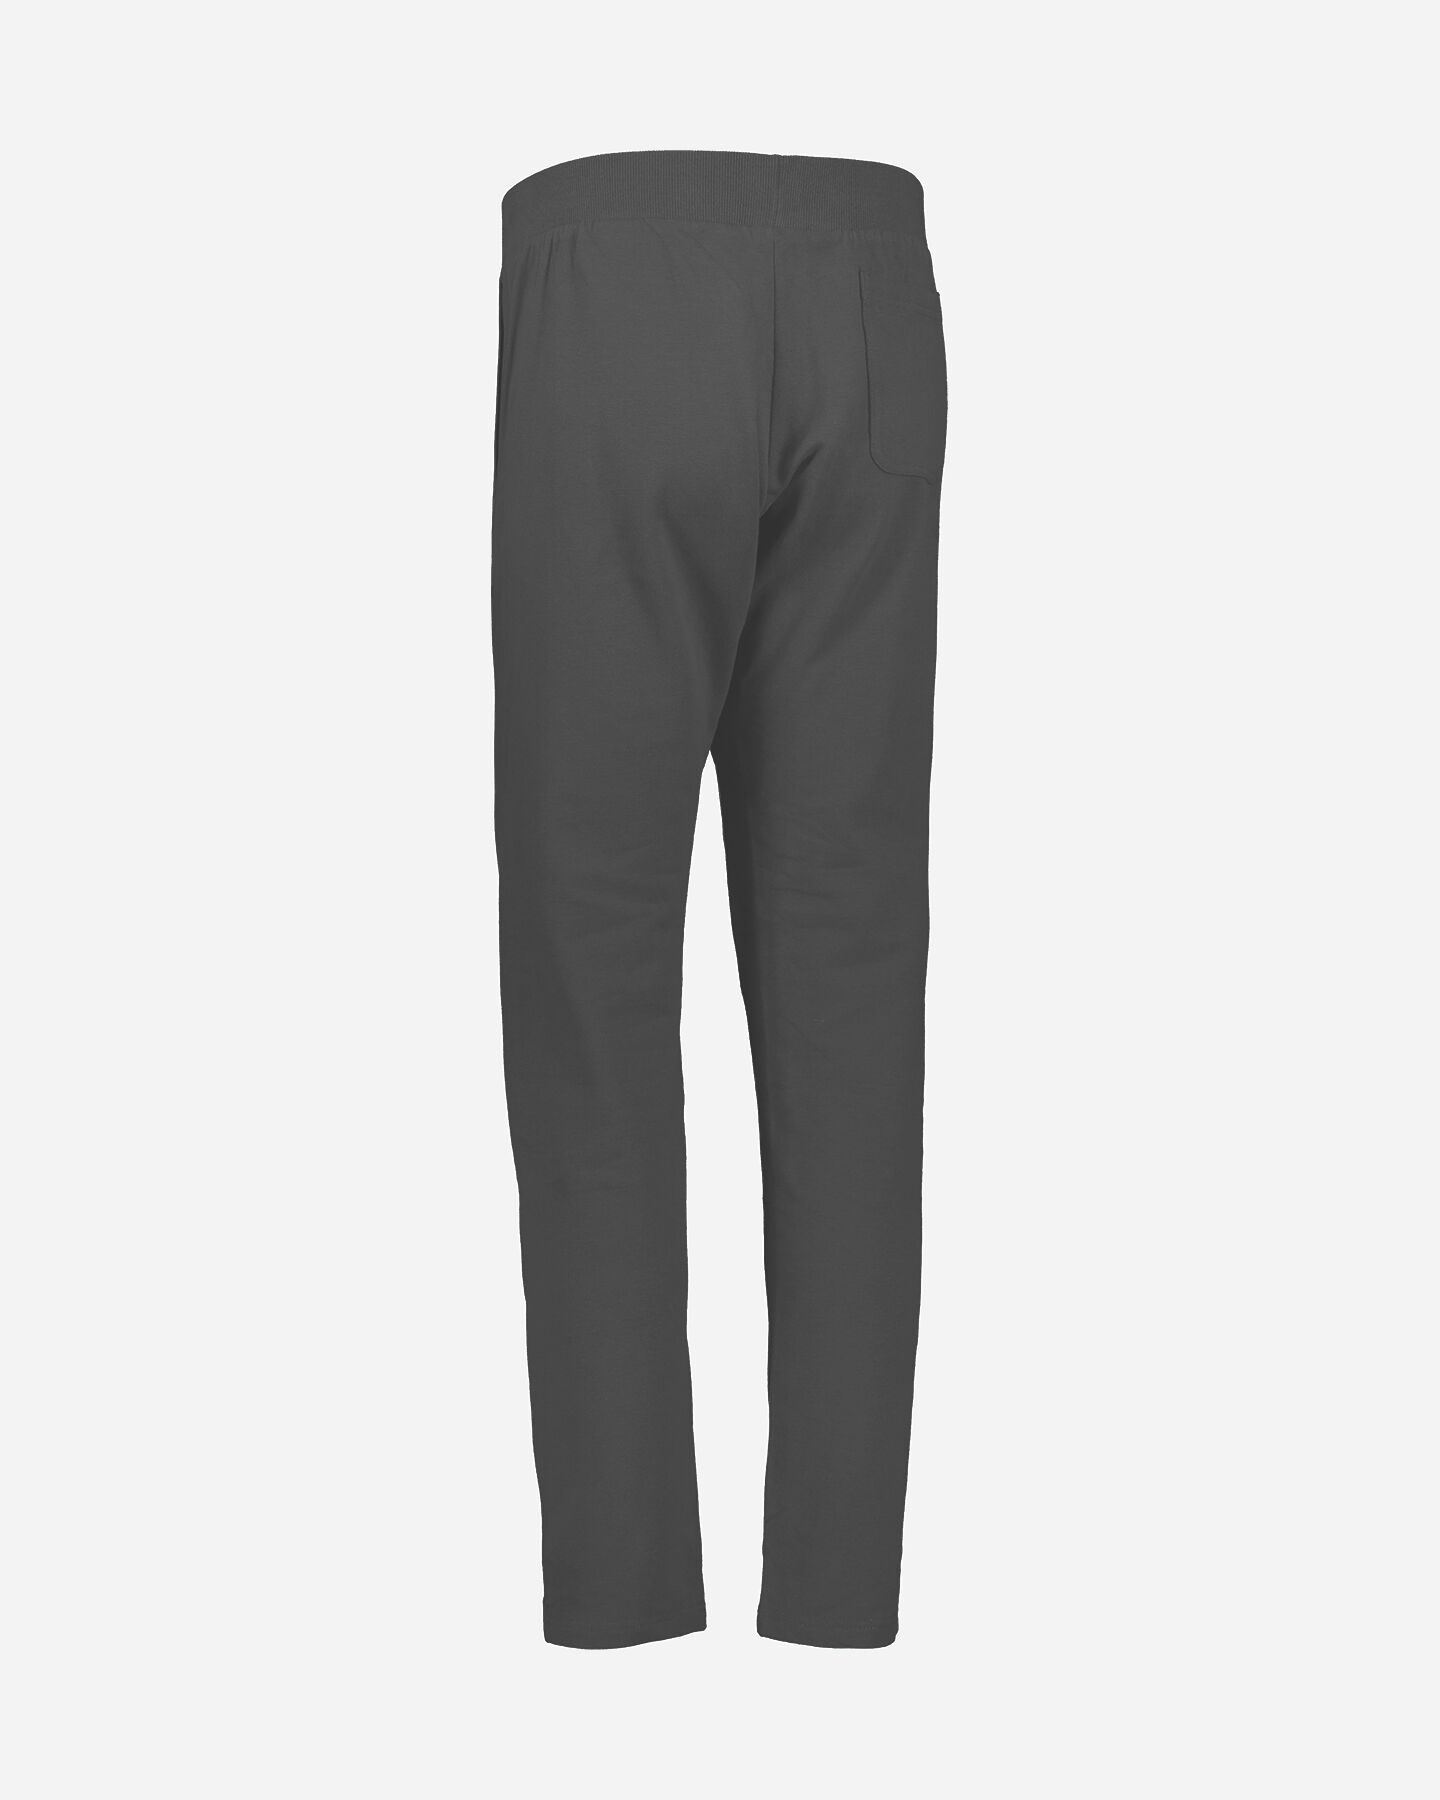 Pantalone FREDDY STRAIGHT STRETCH  W S5245258 scatto 2